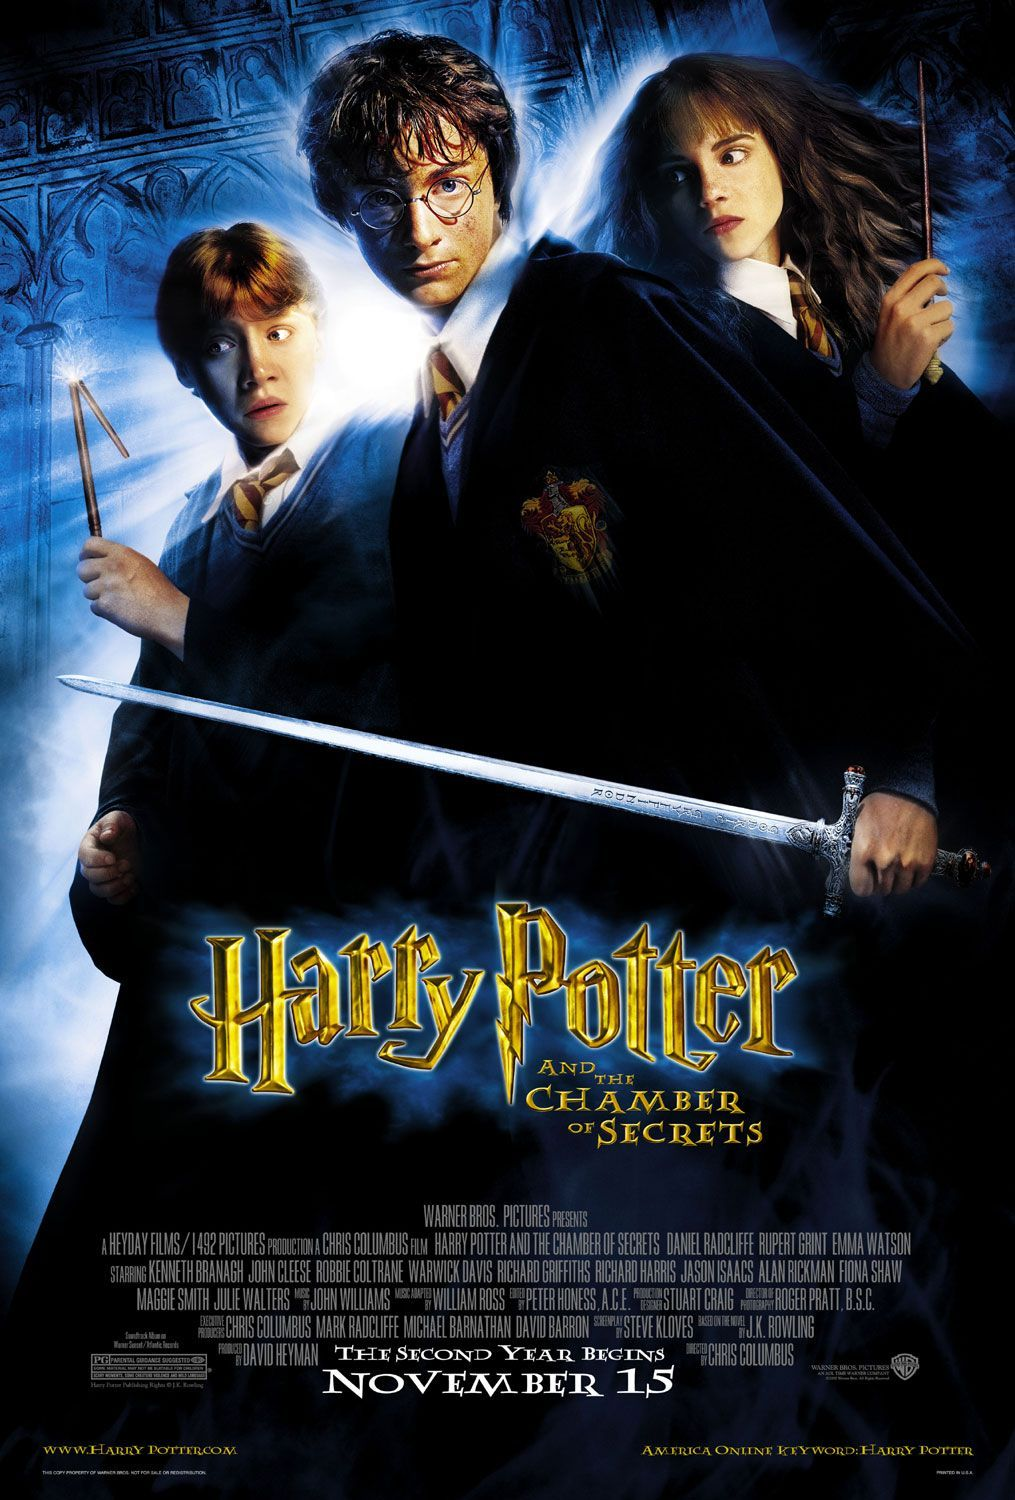 Harry potter and the chamber of secrets movies maniac - Harry potter chambre secrets streaming ...